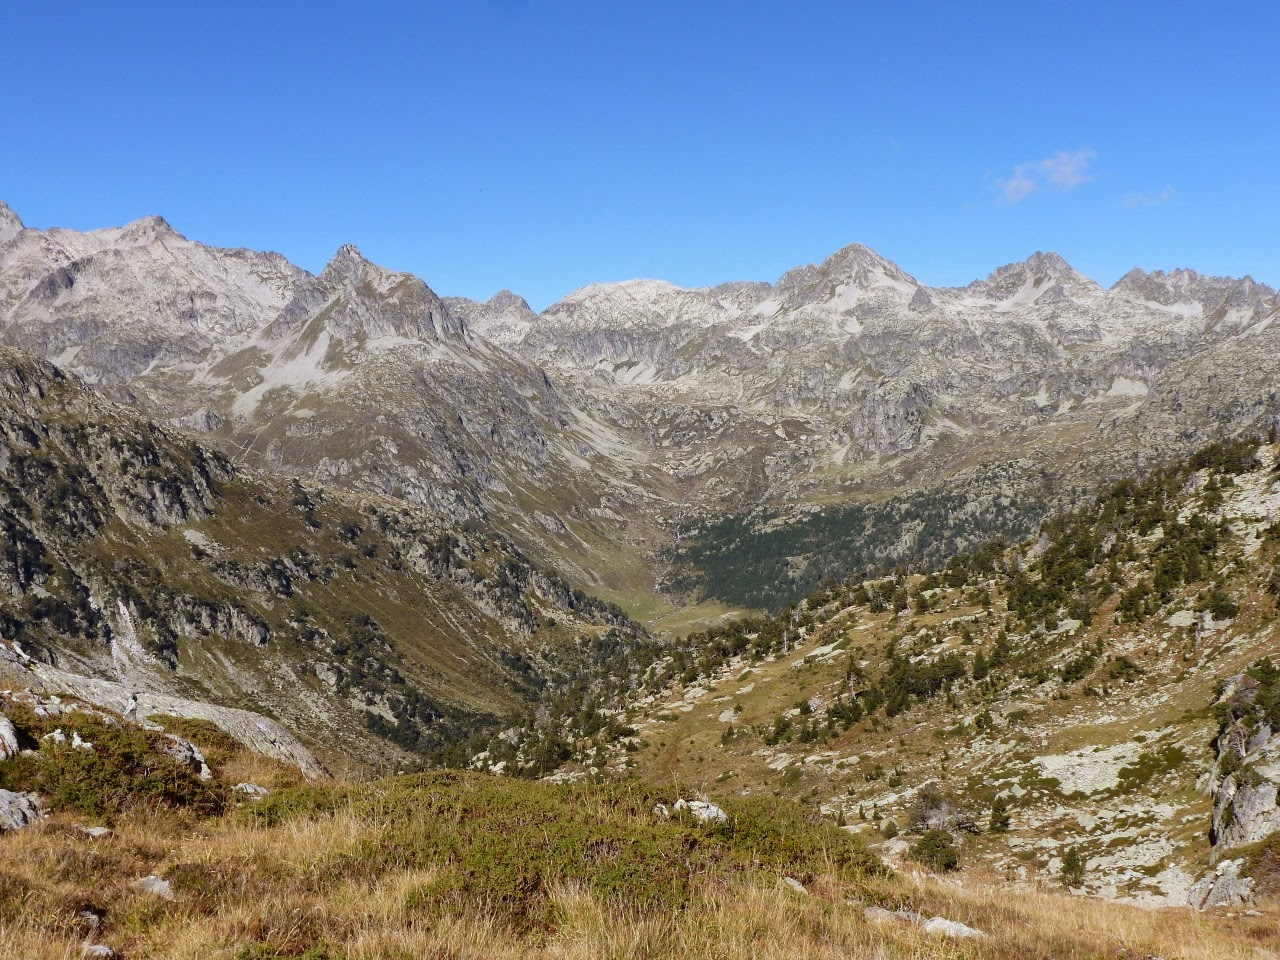 Looking north down the Gave d'Arratille